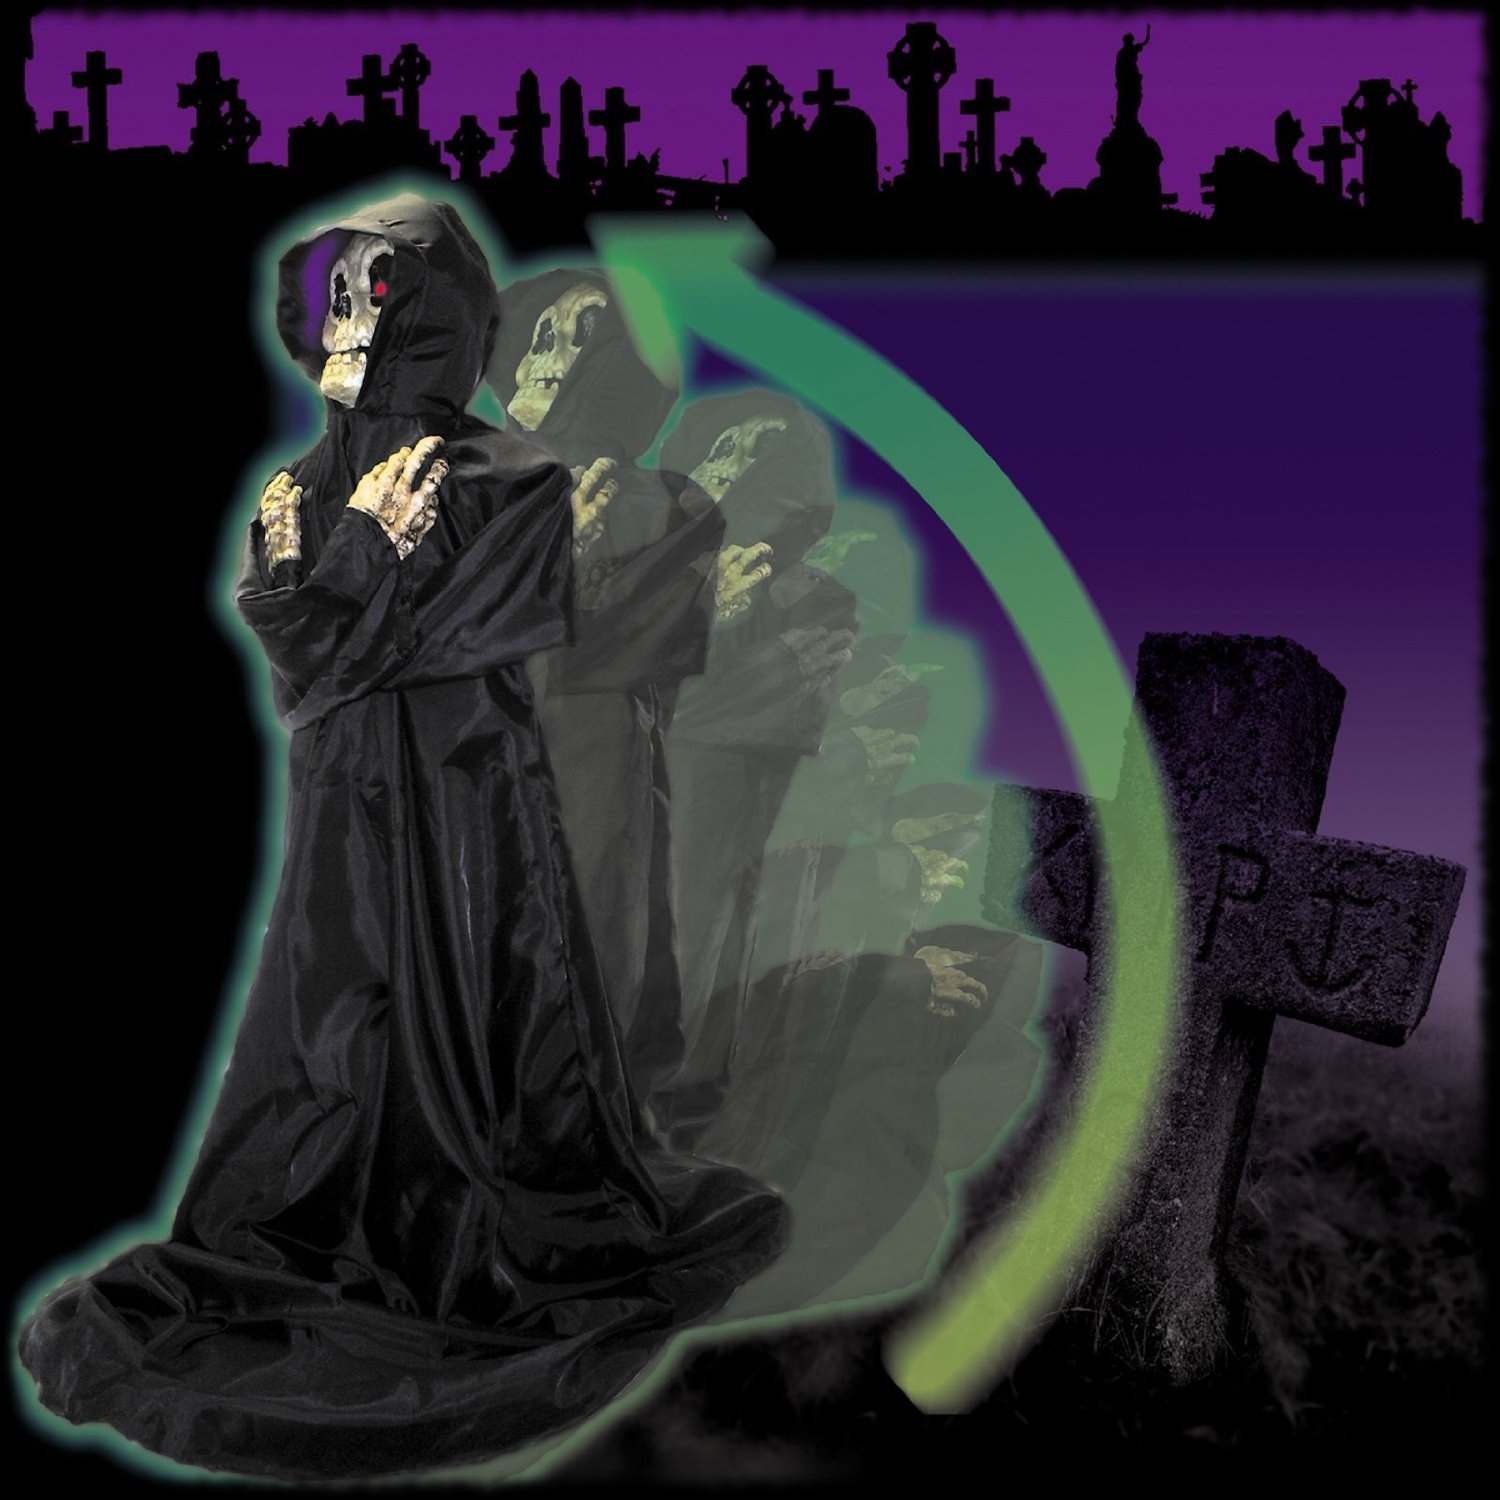 Animatronic Pop Up Rising Grim Reaper Moving Halloween Decoration Graveyard Prop